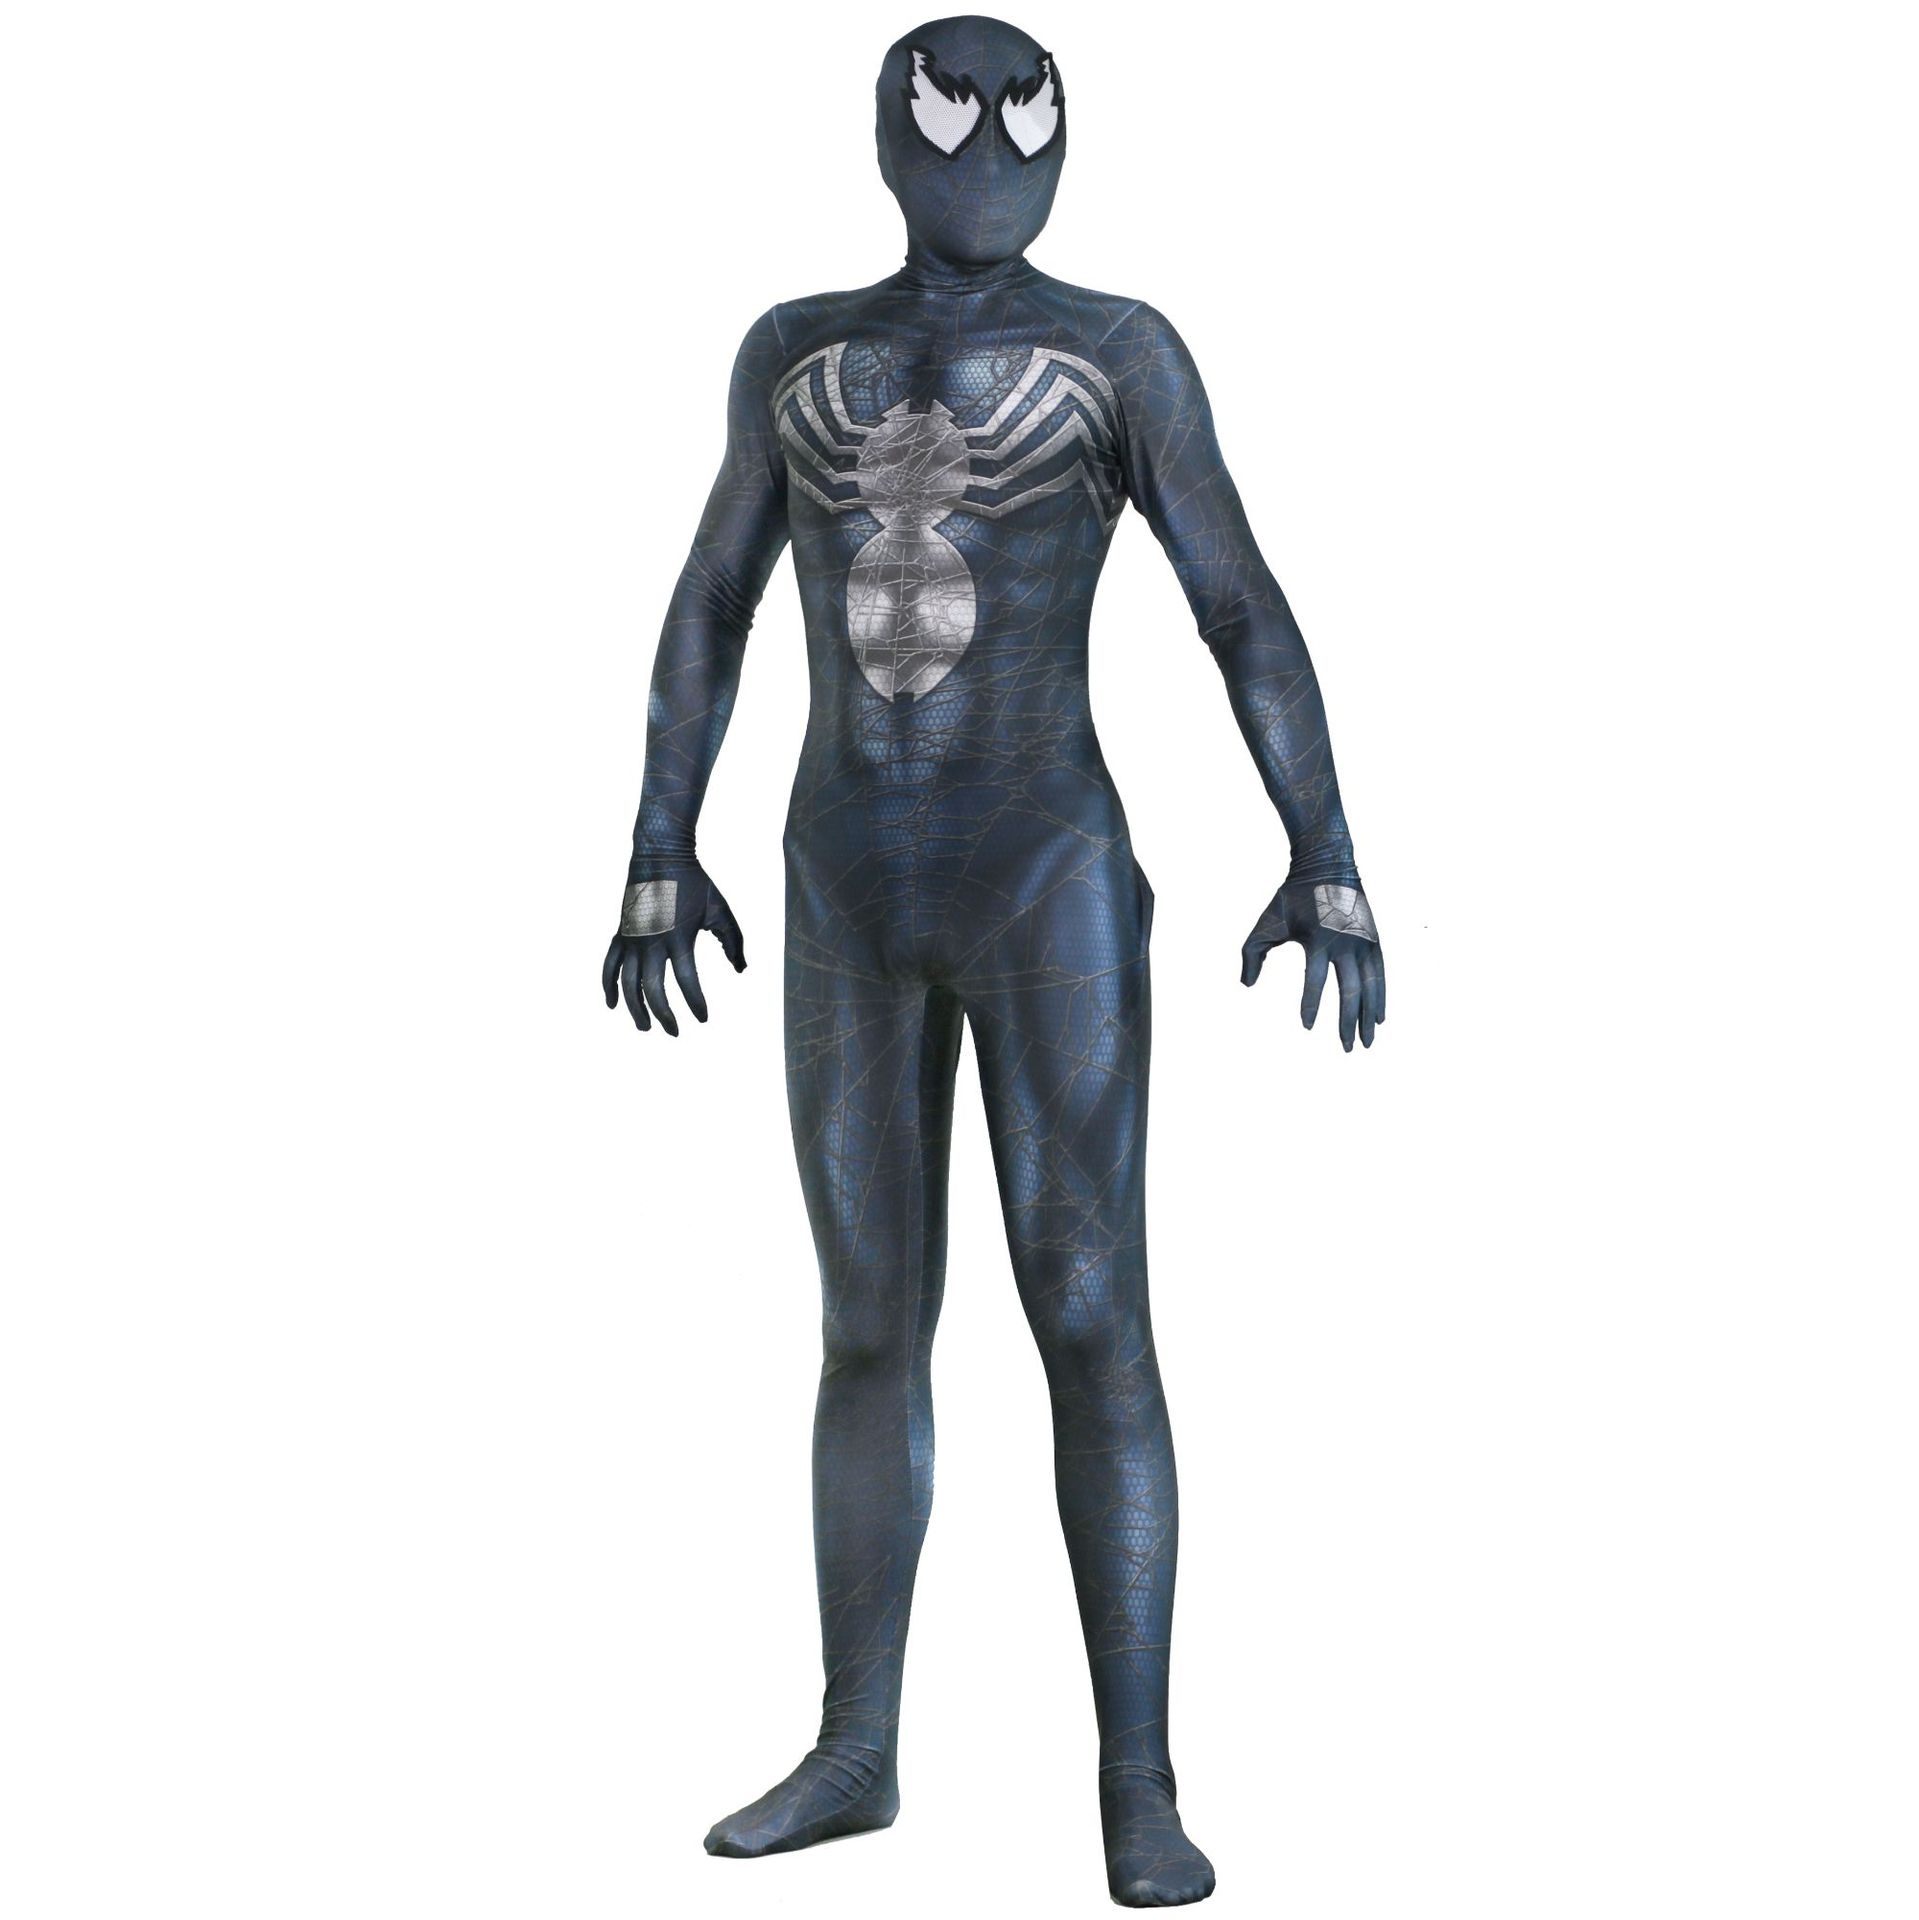 new spider Venom Cosplay Costumes 3D Printed Symbiote Spider Man Edward Brock Lycra Costume Zentai Spidey Suit